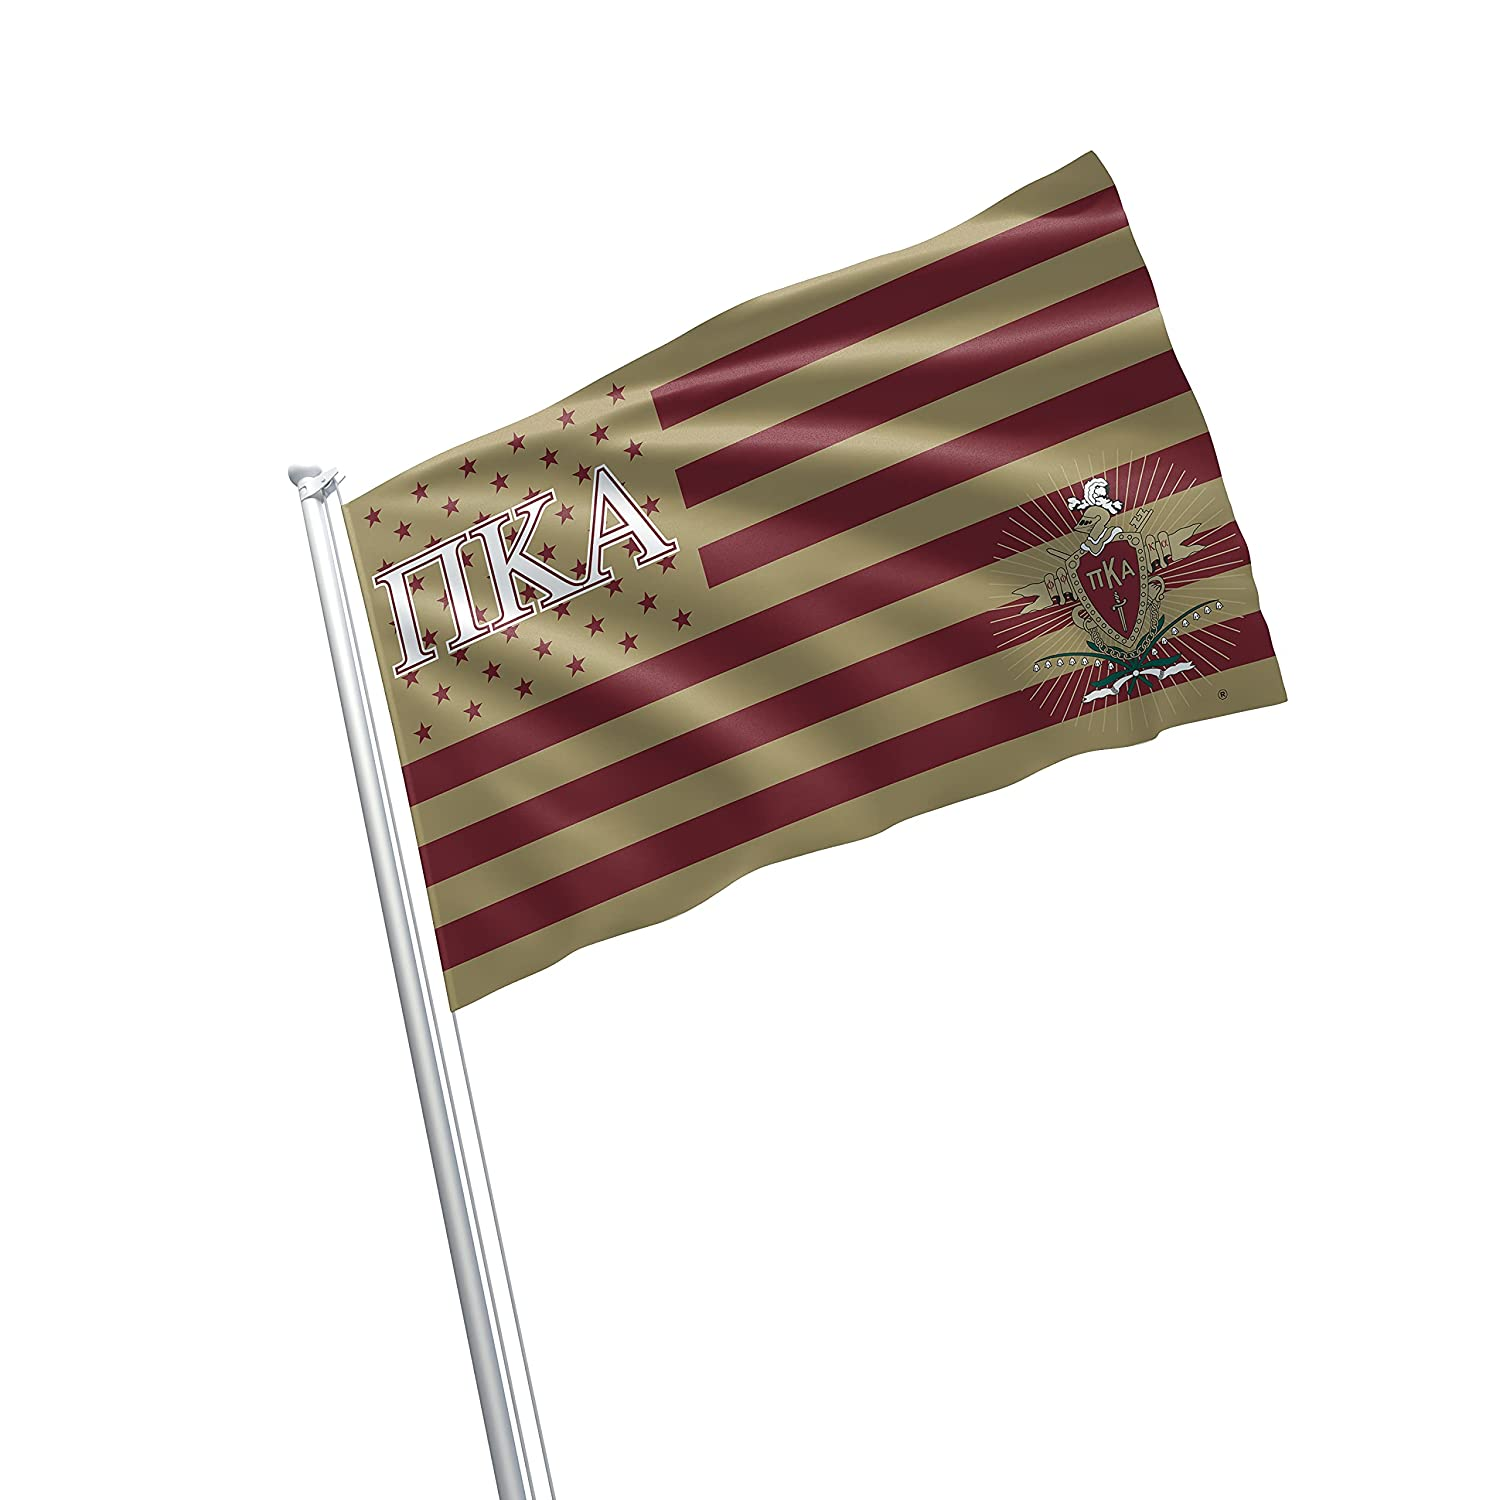 Pi Kappa Alpha Fraternity Greek Life Licensed Flag 2x3 Feet Flag Banner Wall Decor Outdoor Indoor Decoration Brass Grommets Double Stitch